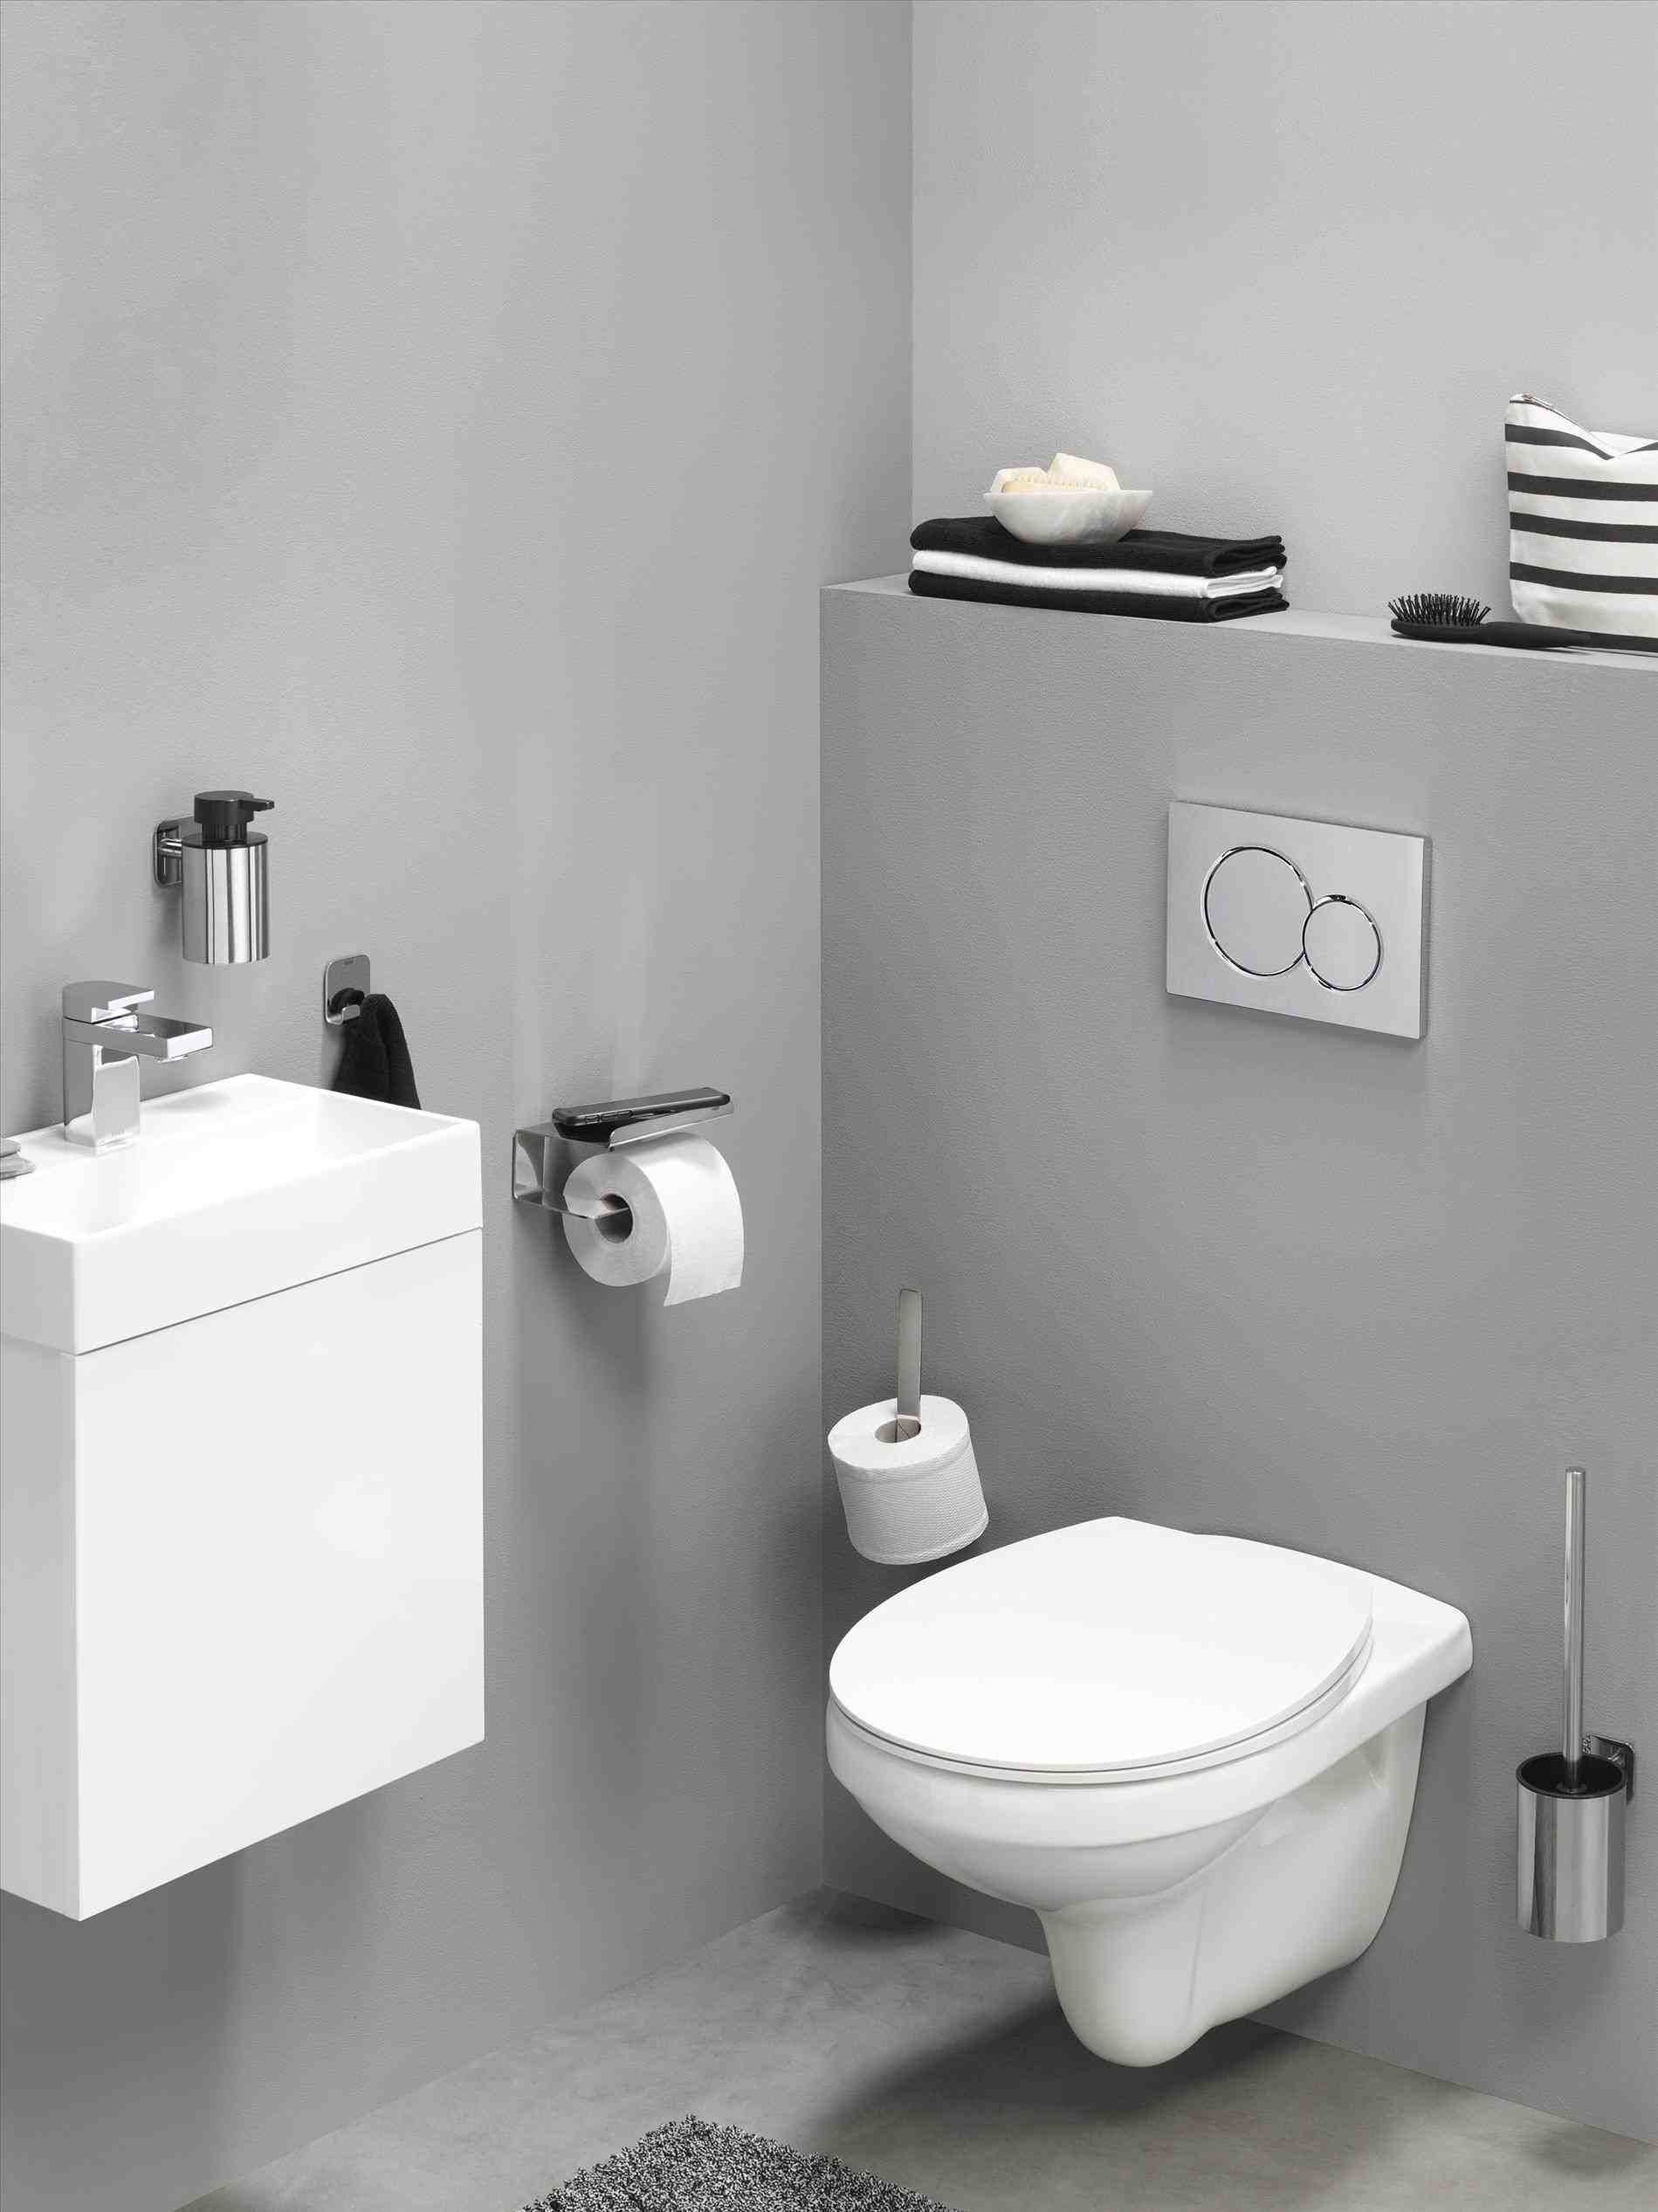 New Post Bathroom Accessories Store Visit Bathroomremodelideassclub - Bathroom accessories store near me